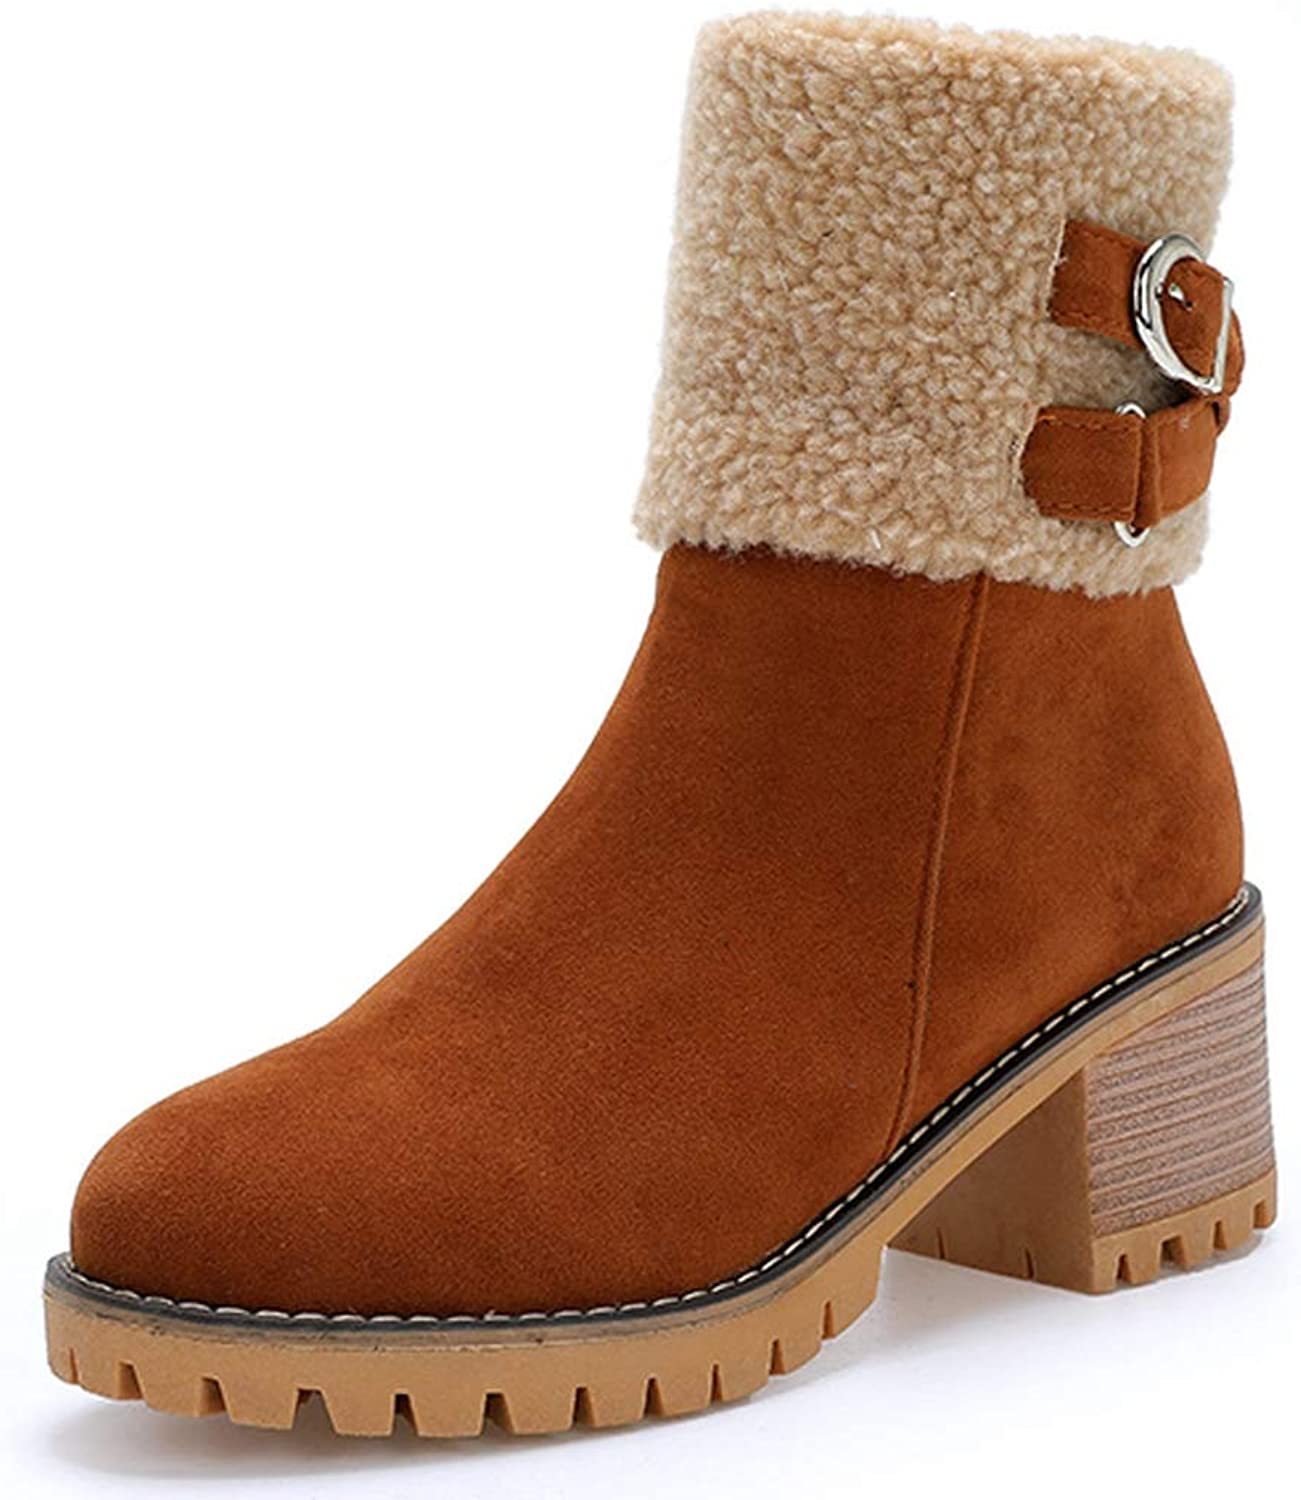 GIY Women's Winter Warm Snow Boots Round Toe Side Zipper Short Boots Suede Chunky Low Heel Faux Fur Ankle Snow Booties